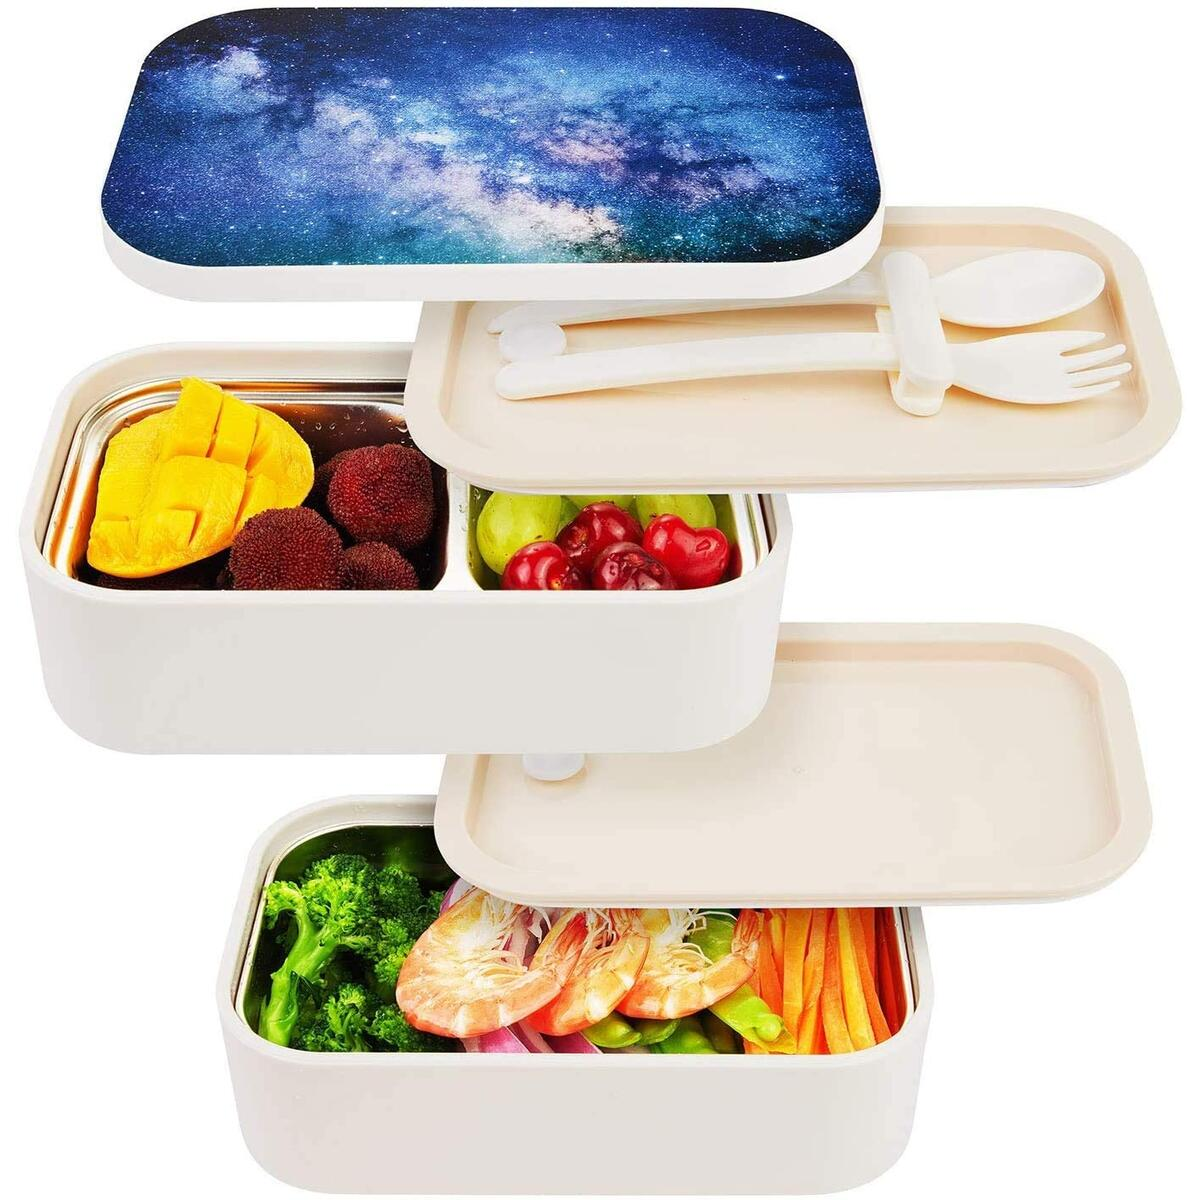 Stackable Bento Lunch Box - All-in-One Leak Proof Stainless Steel Container - Modern Bento-Style Design, Built-in Plastic Utensil Set, and Nylon Sealing Strap (Starry)